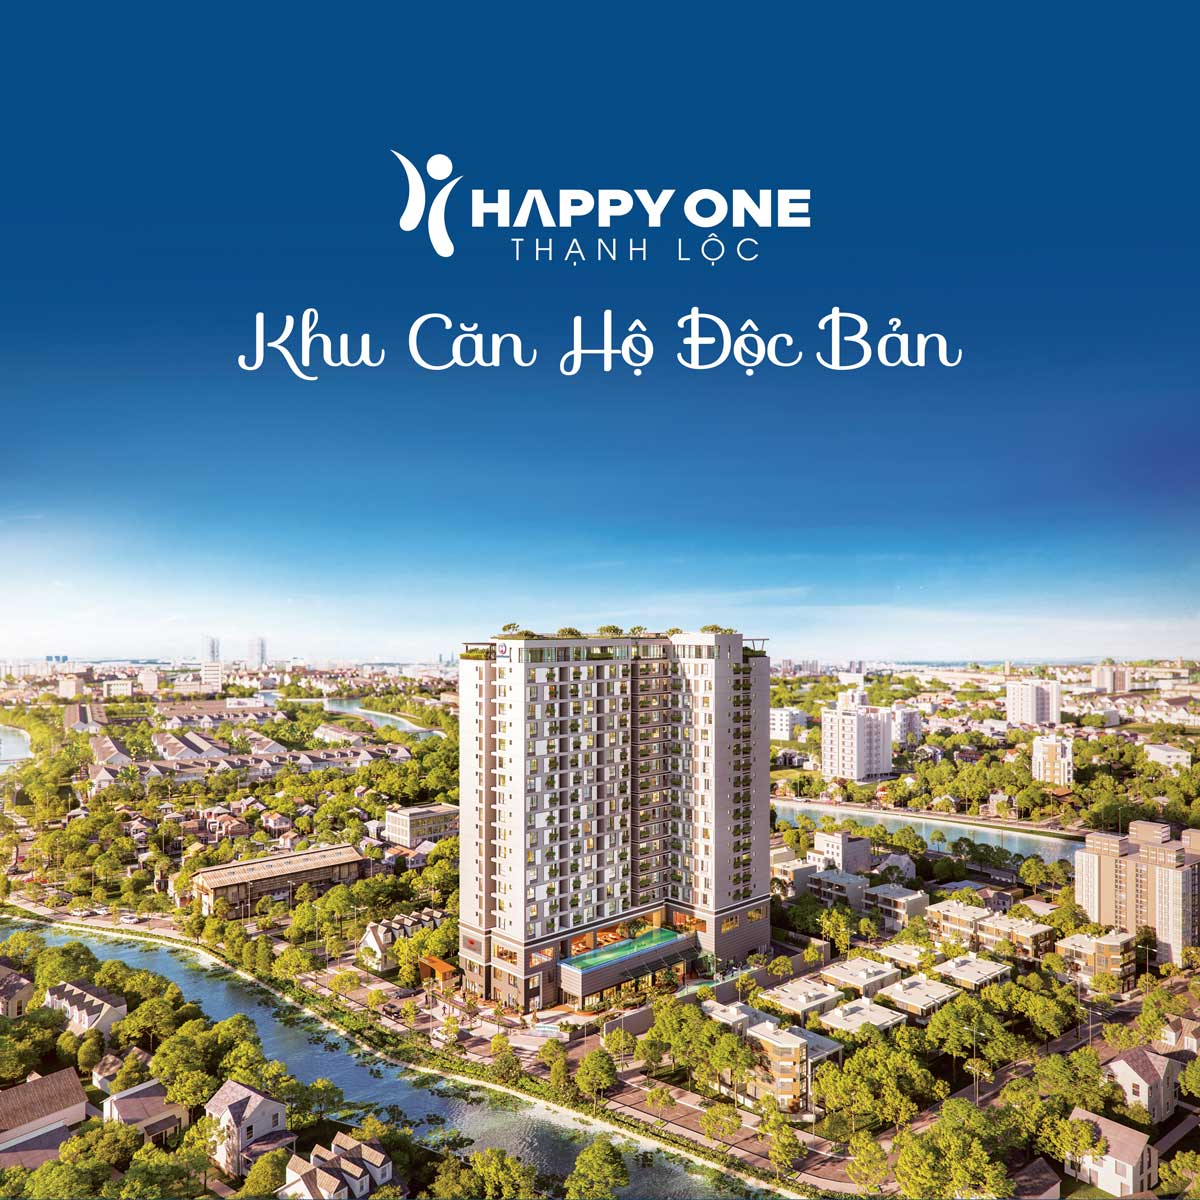 can ho doc ban happy one thanh loc - HAPPY ONE PREMIER THẠNH LỘC QUẬN 12